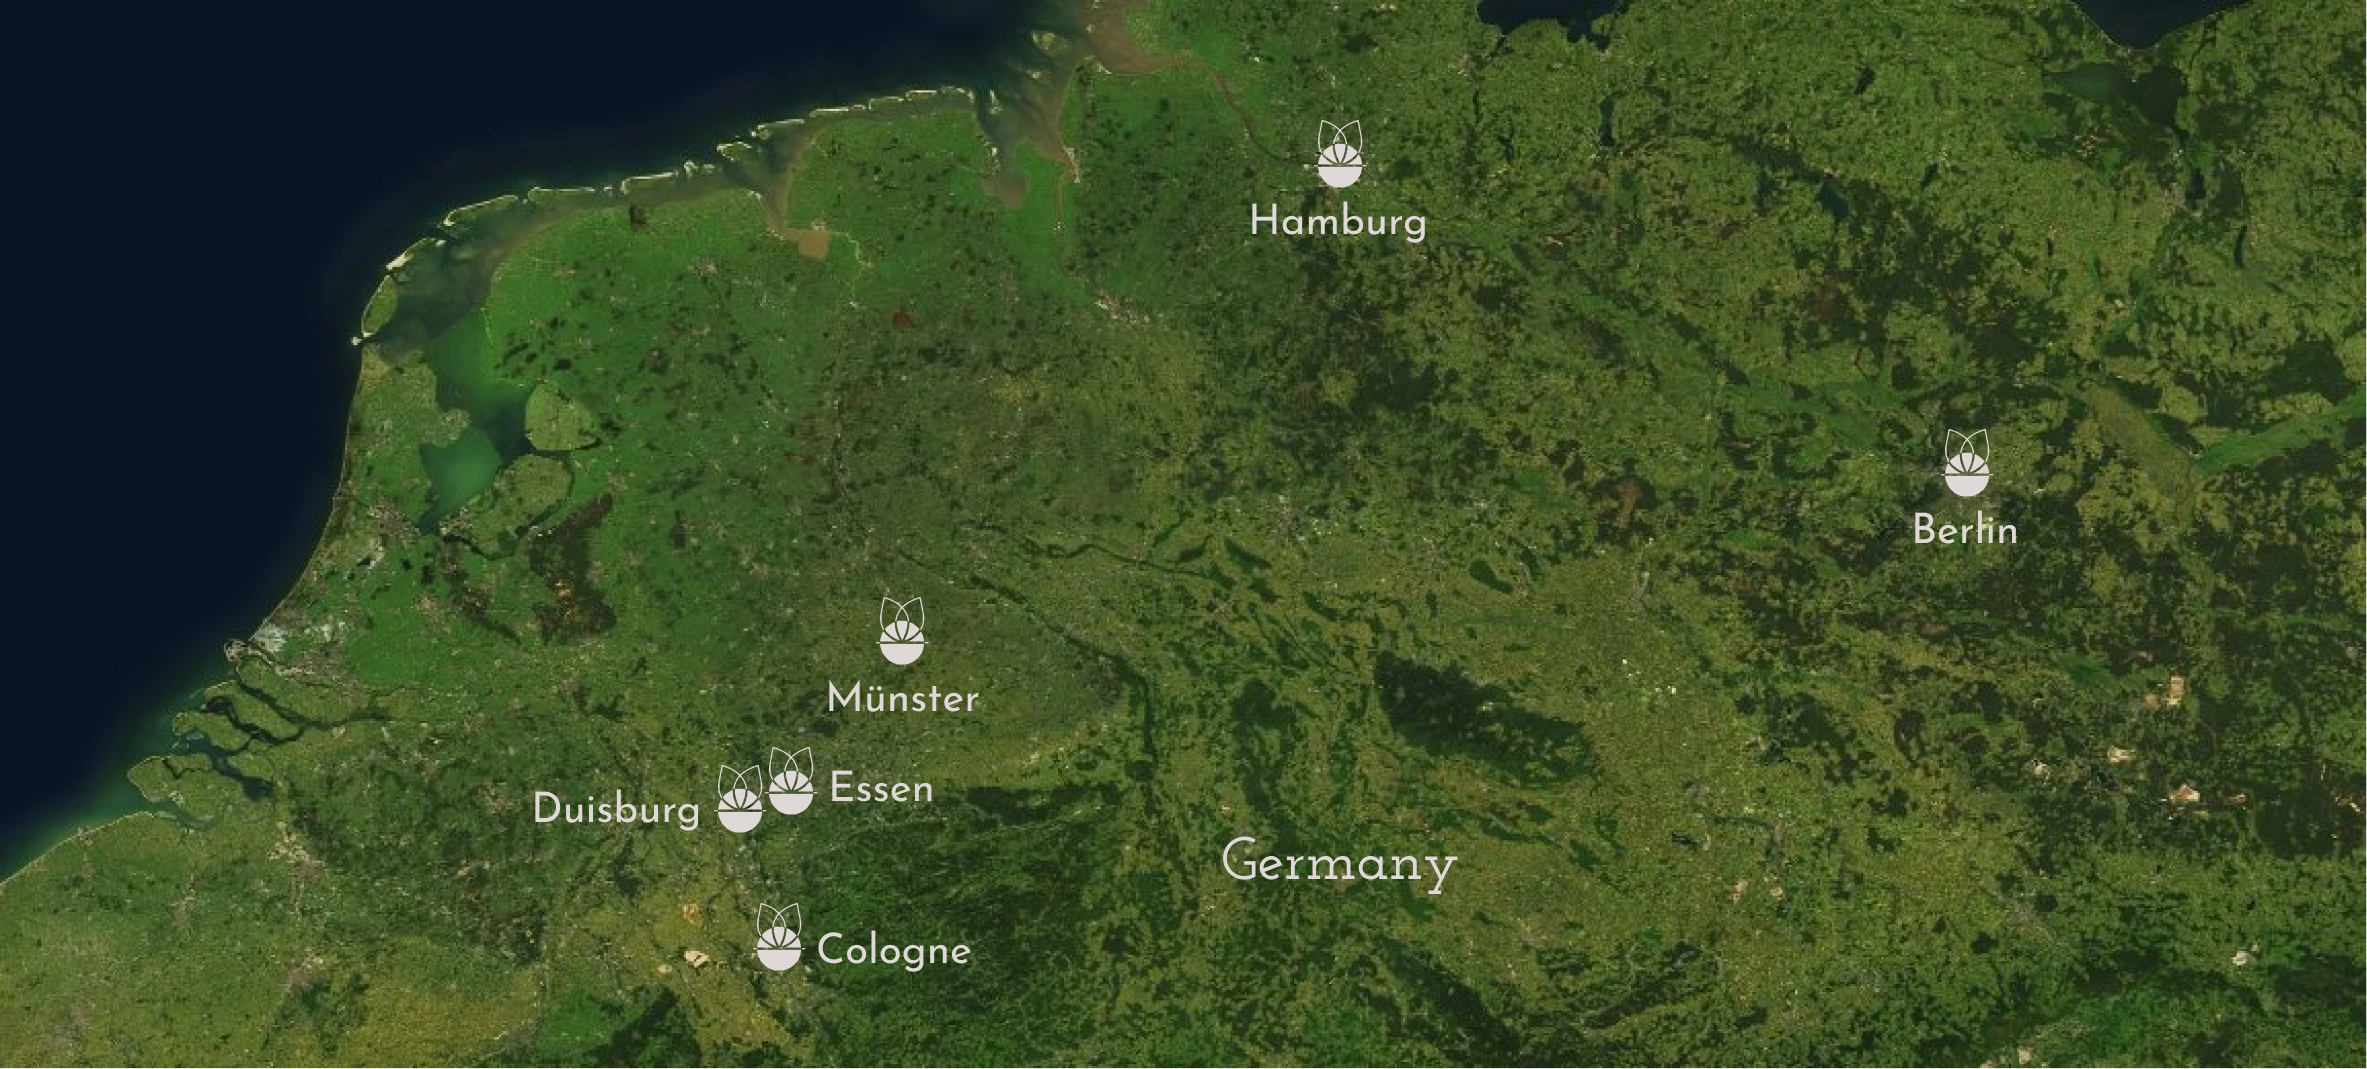 Satellite photo of Germany, without streets and other indications. There is the Grome Logo placed on Hamburg, Berlin, Munster, Essen, Duisburg and Cologne, the cities where Grome is present